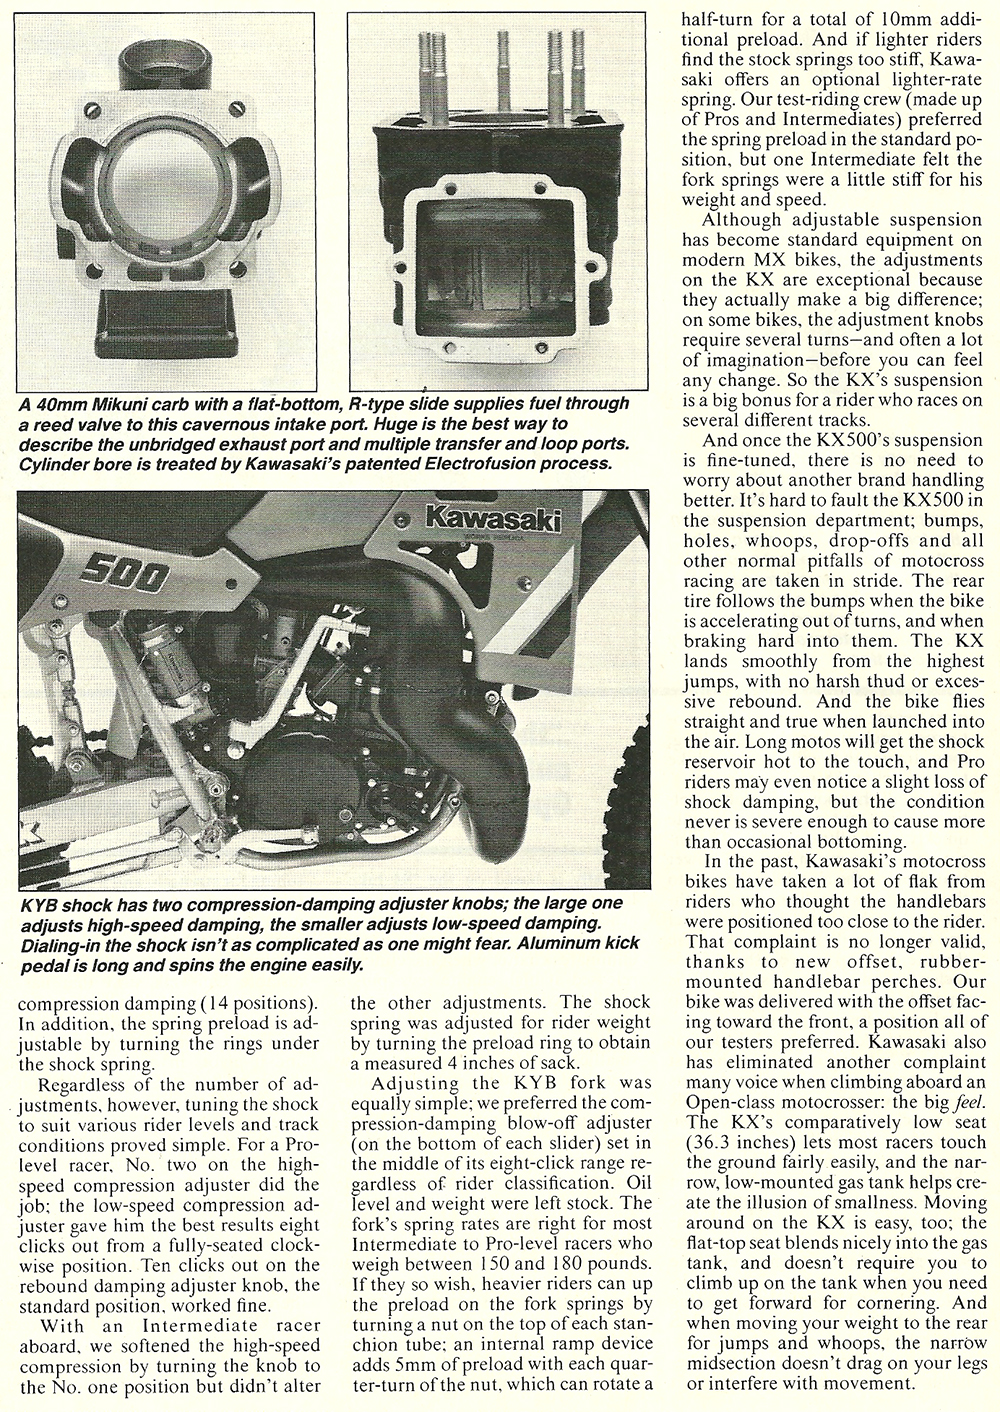 1985 Kawasaki KX500 road test 05.jpg